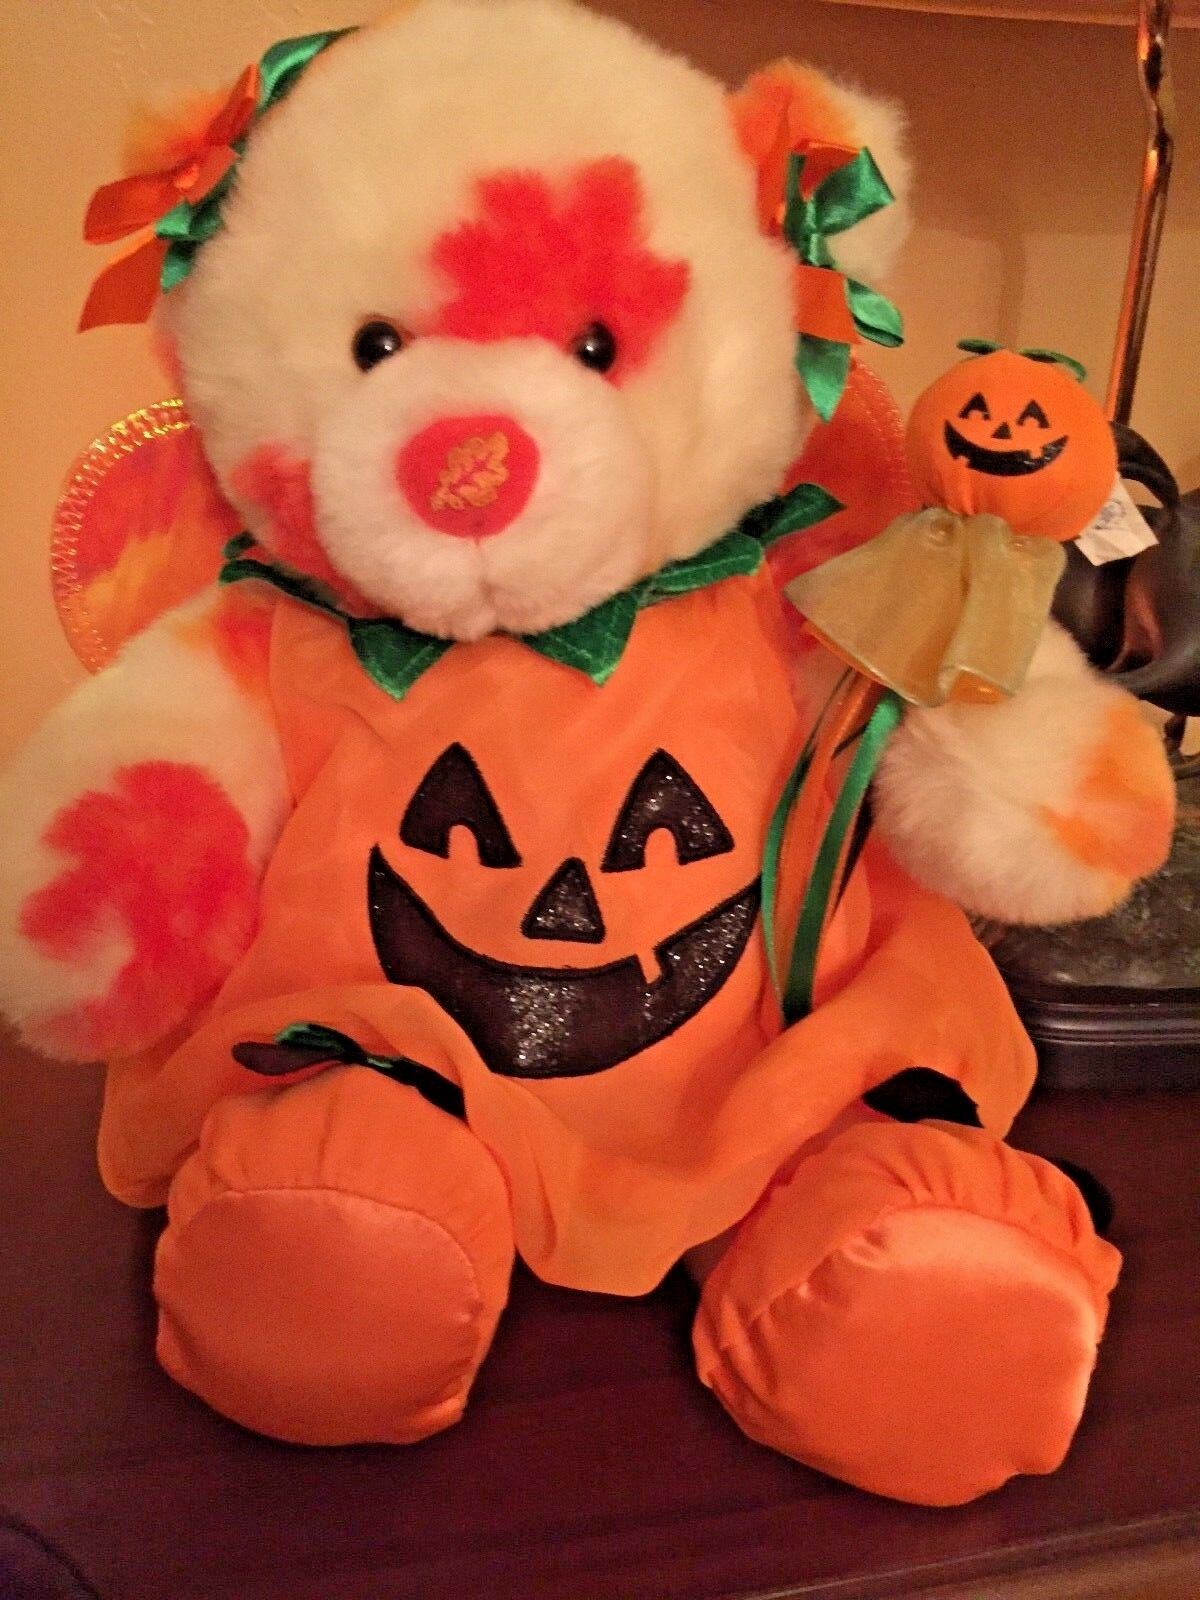 BUILD-A-BEAR™ BUILD-A-BEAR™ BUILD-A-BEAR™ 2009 AUTUMN HUGS BEAR 15  PLUSH HALLOWEEN PUMPKIN OUTFIT LTD. ED. f1b18a